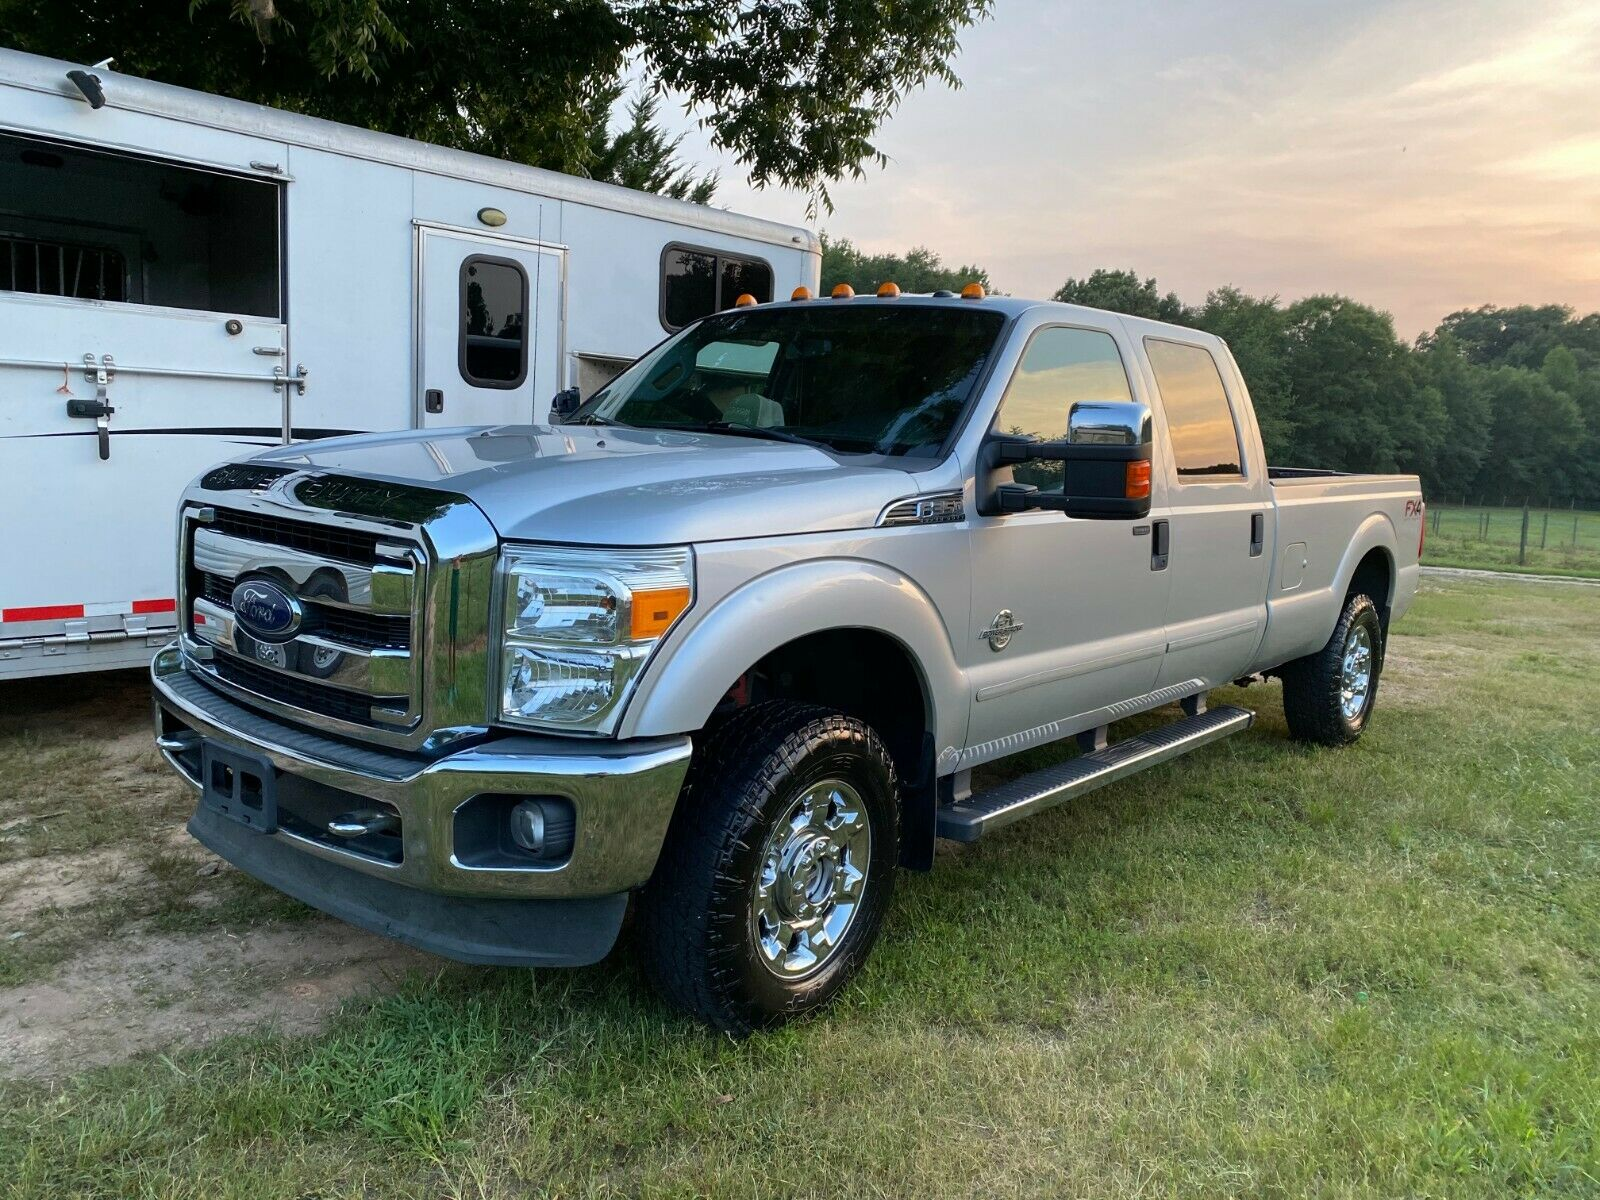 2015 Ford F-350 XLT Super Duty 4x4 (Clean Title)